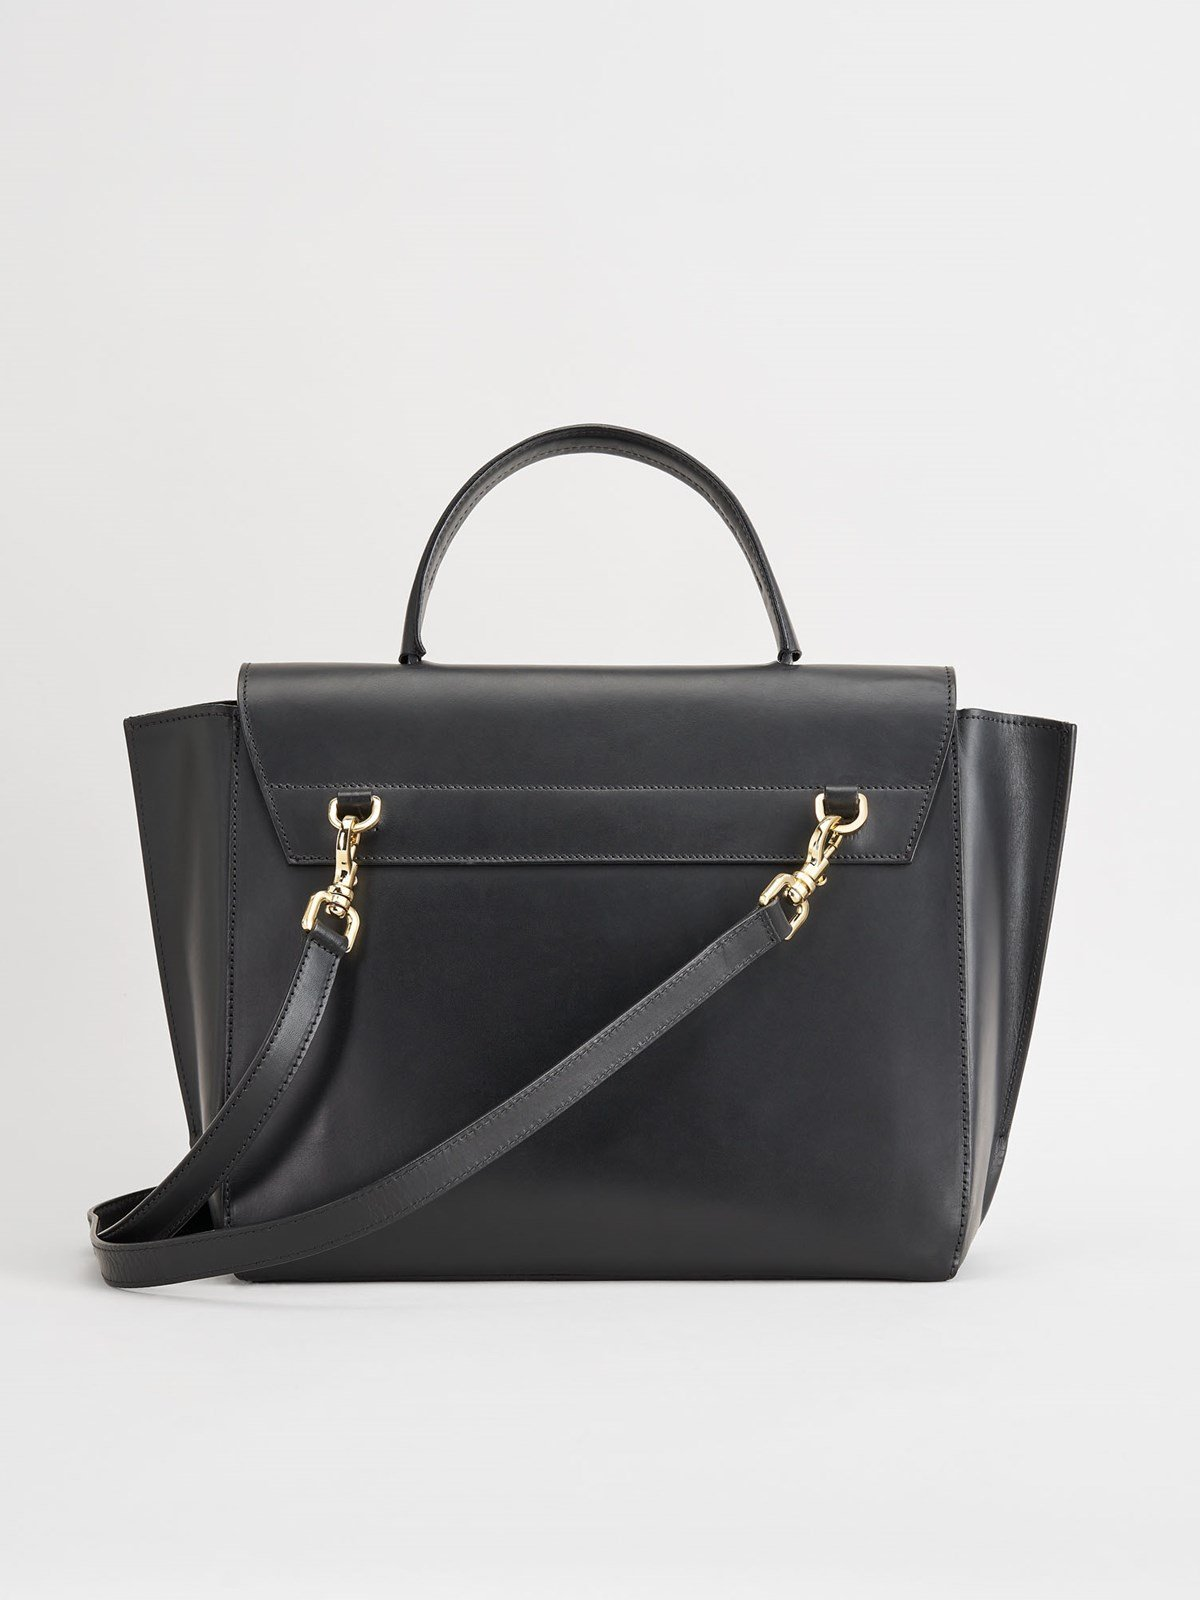 Volterra Black Large handbag